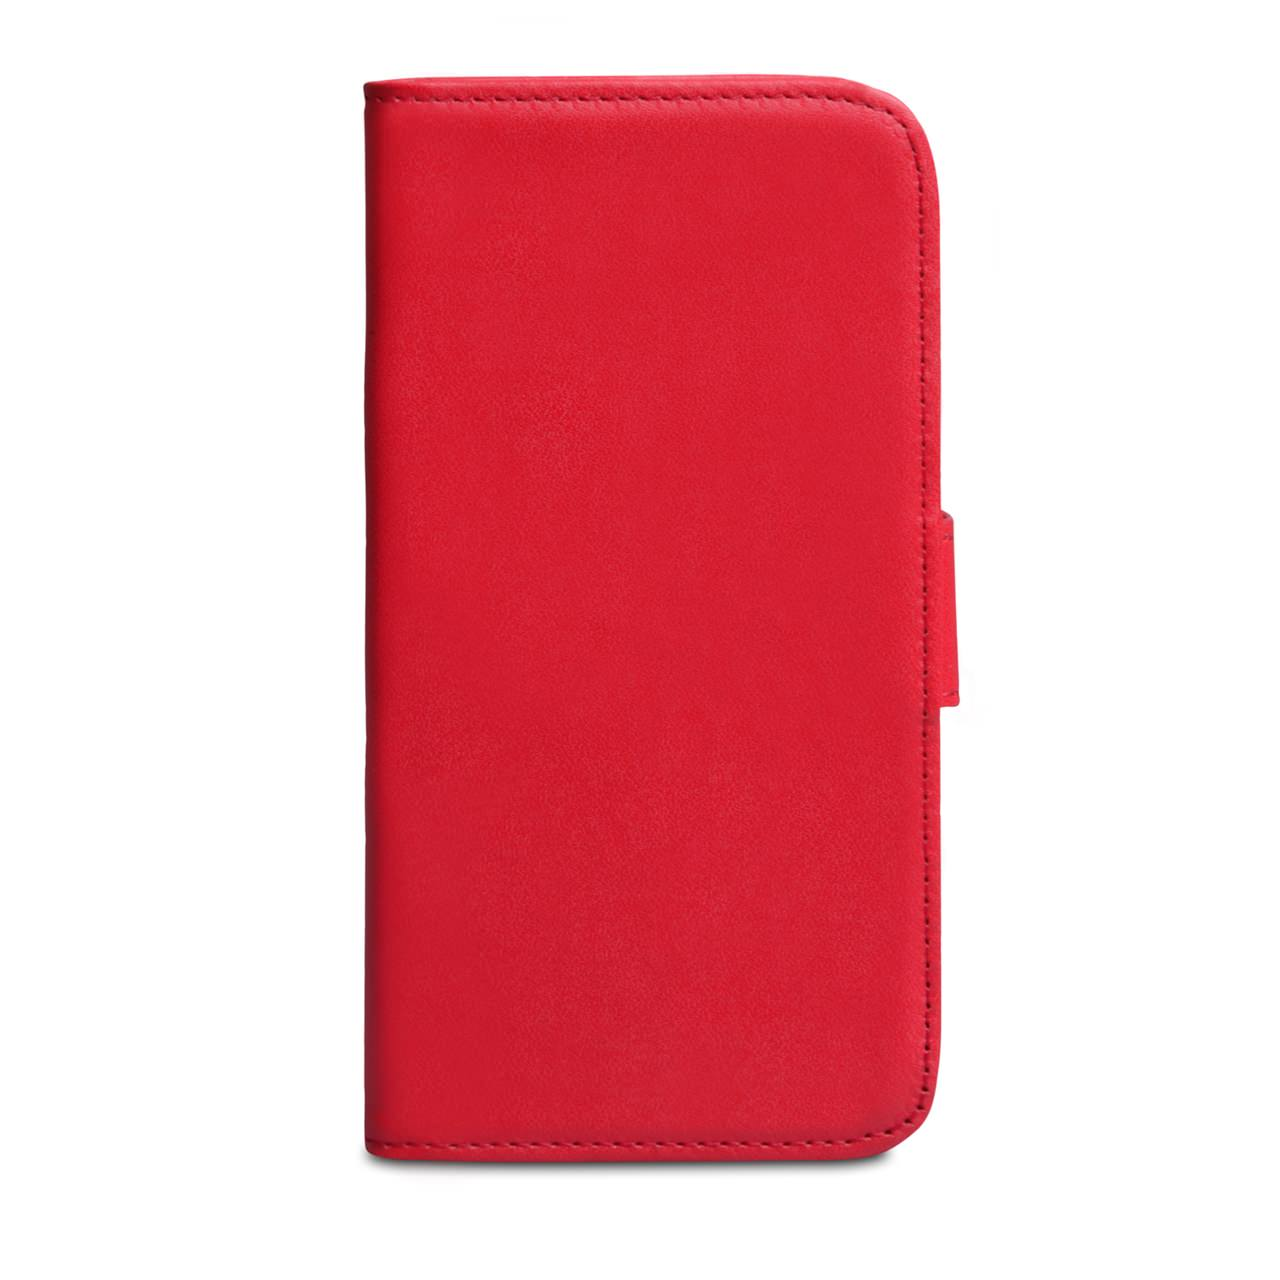 YouSave Samsung Galaxy S4 Red Leather Effect Leather Wallet